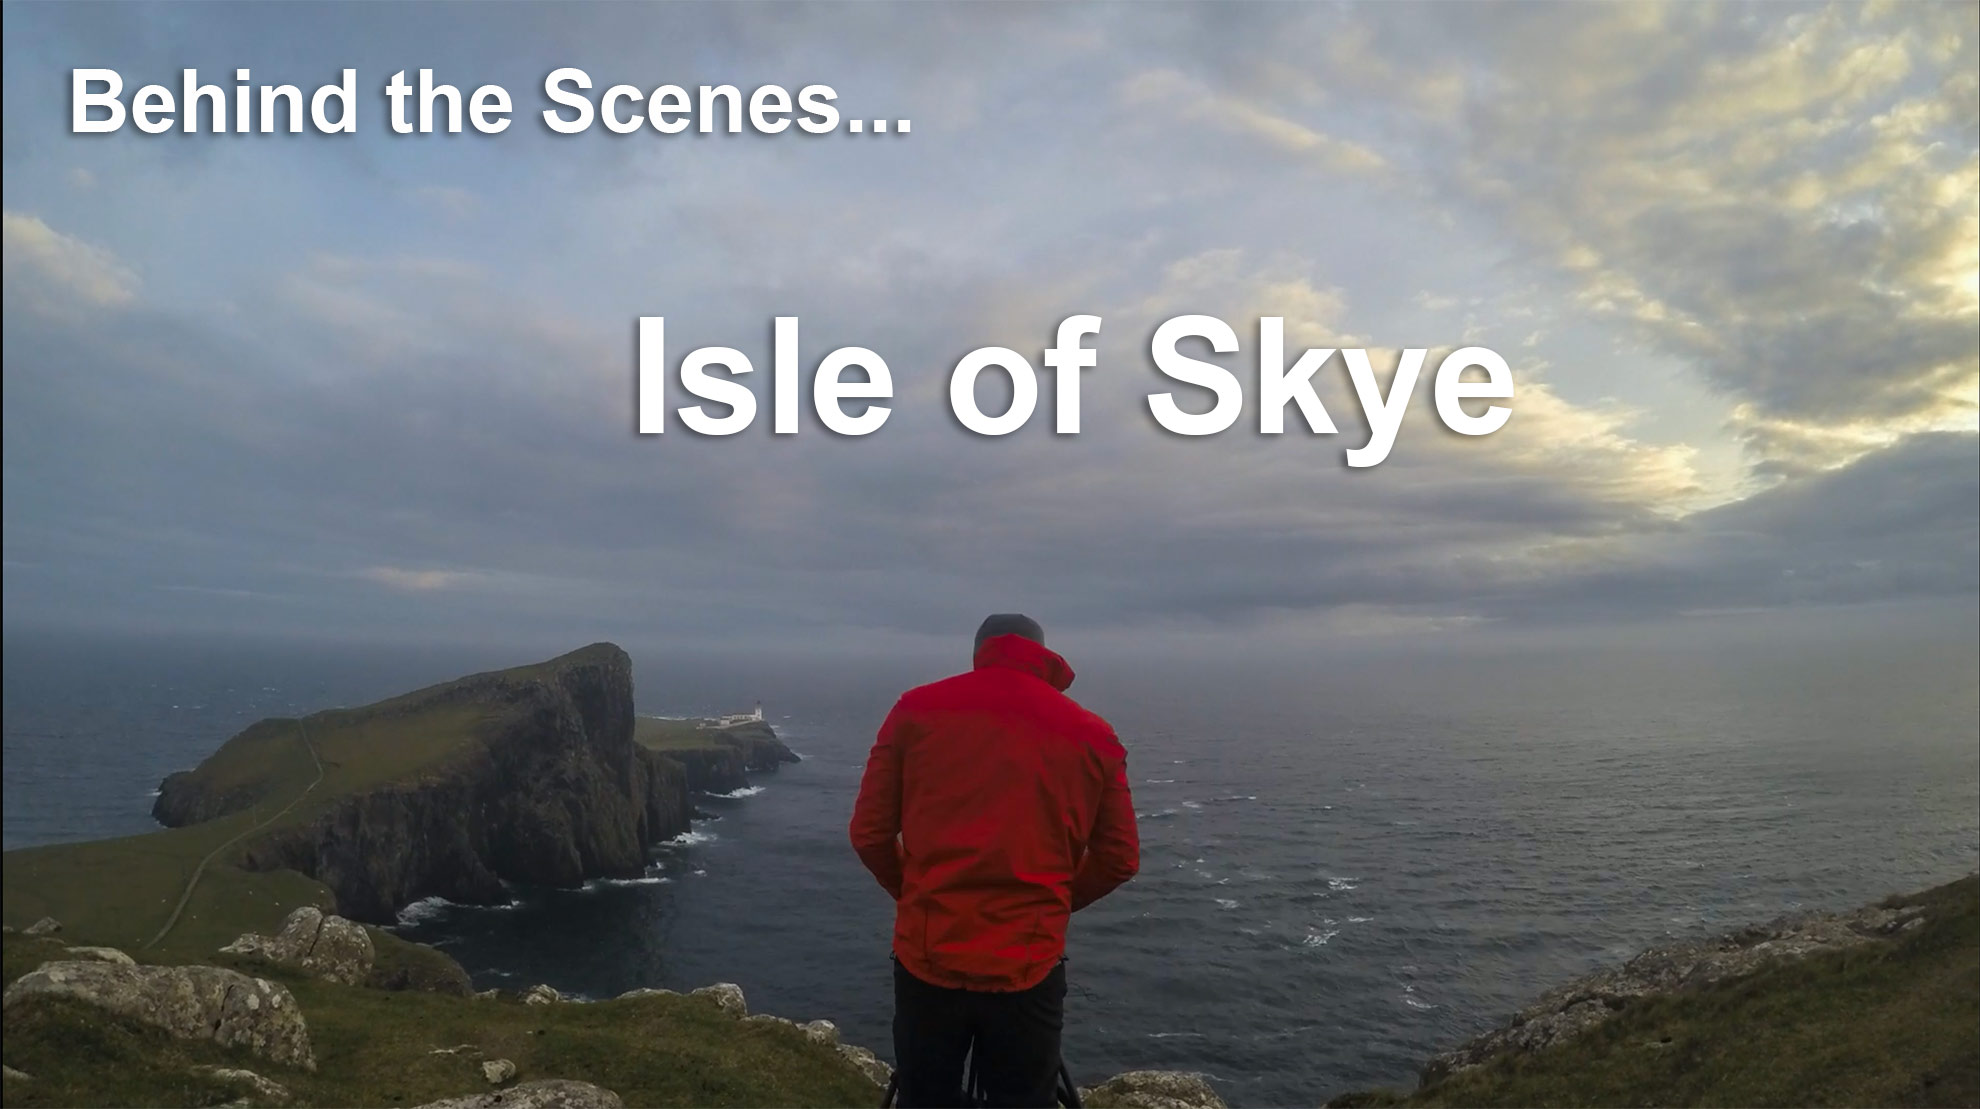 BTS: Follow Me on My Photography Trip to The Isle of Skye